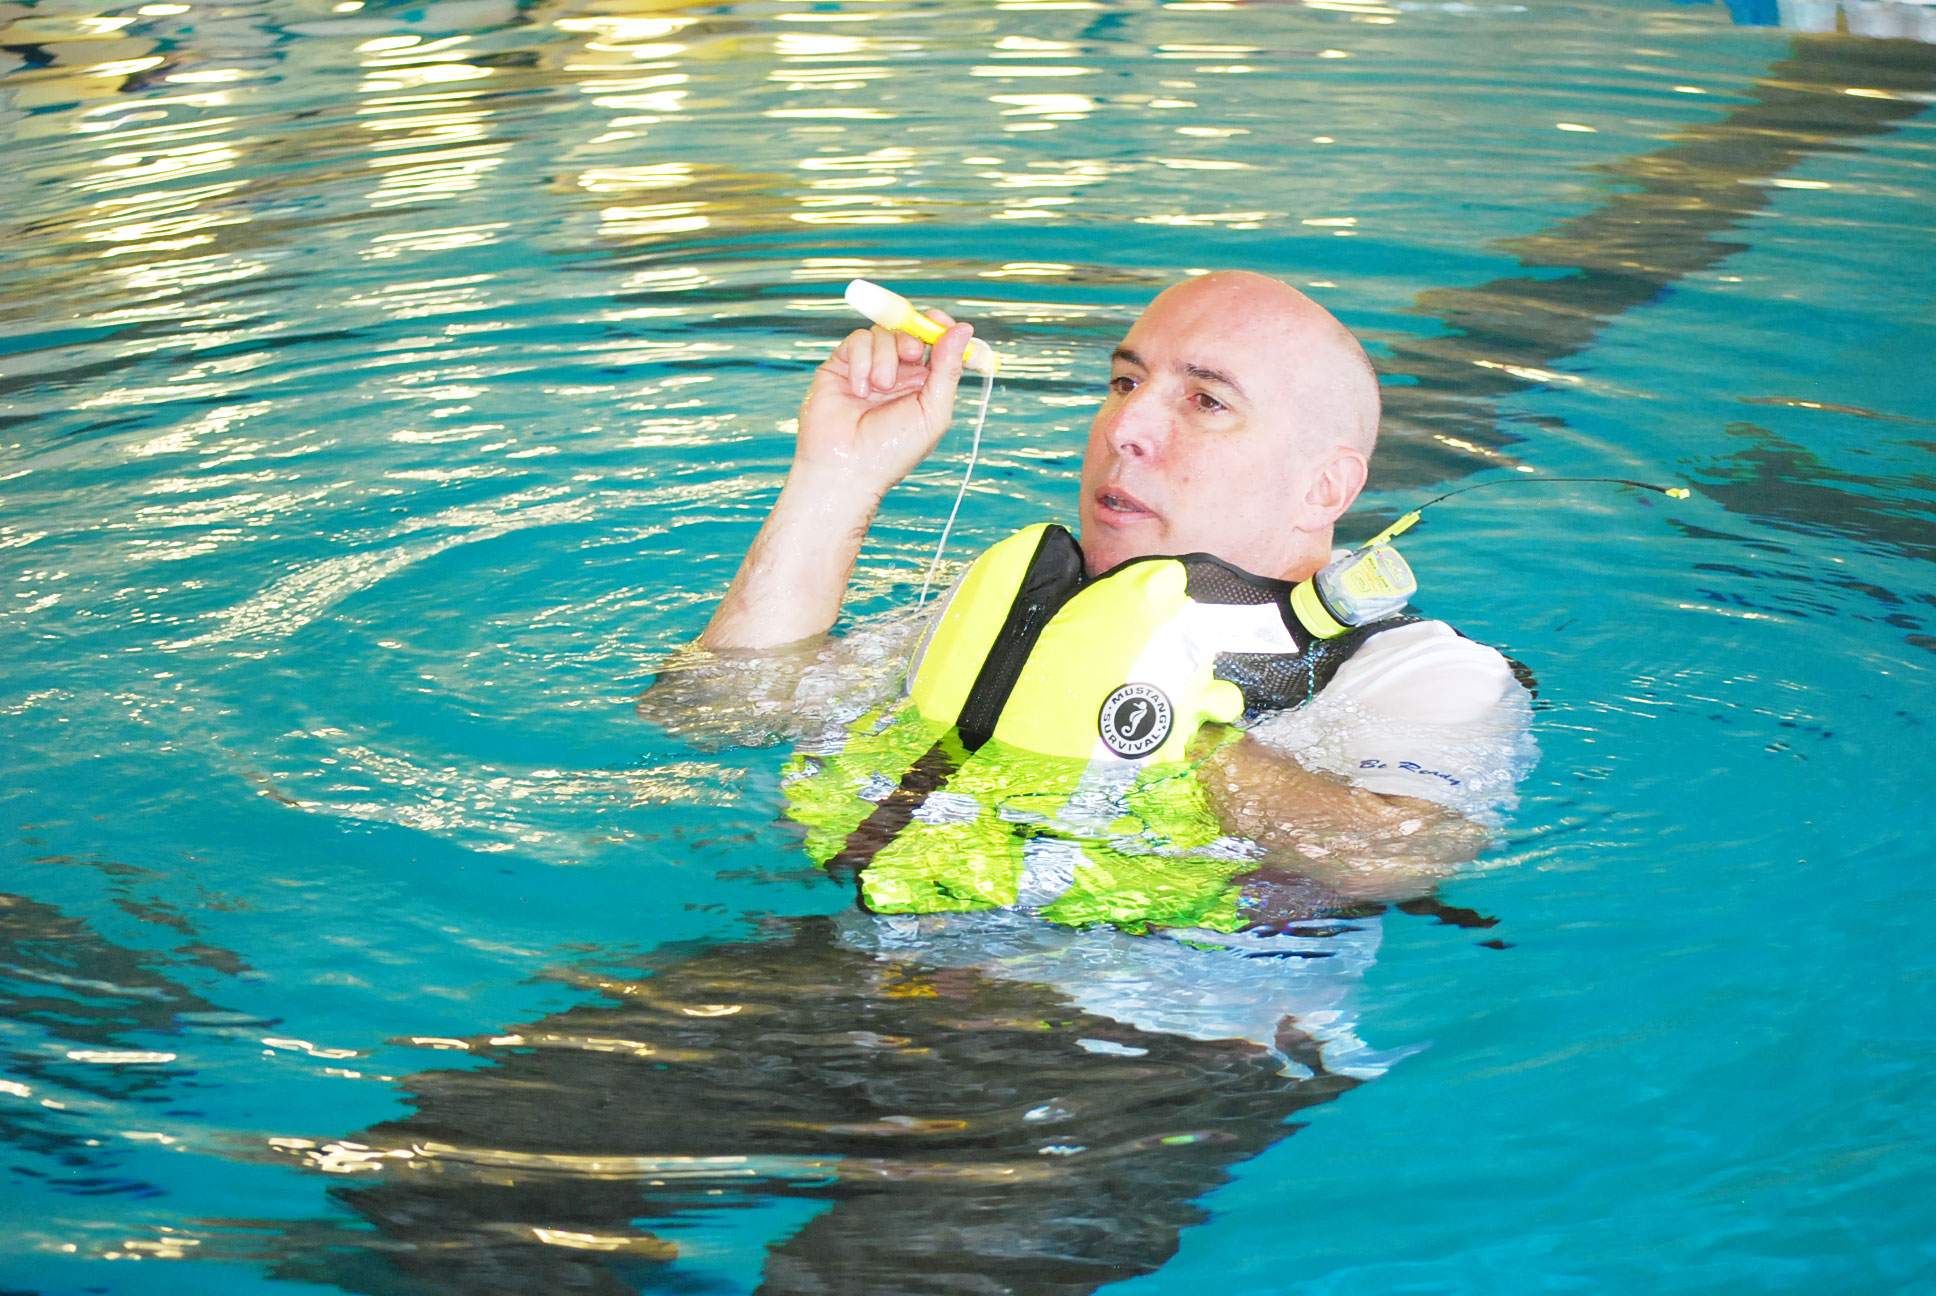 man in water with life jacket waving flashlight